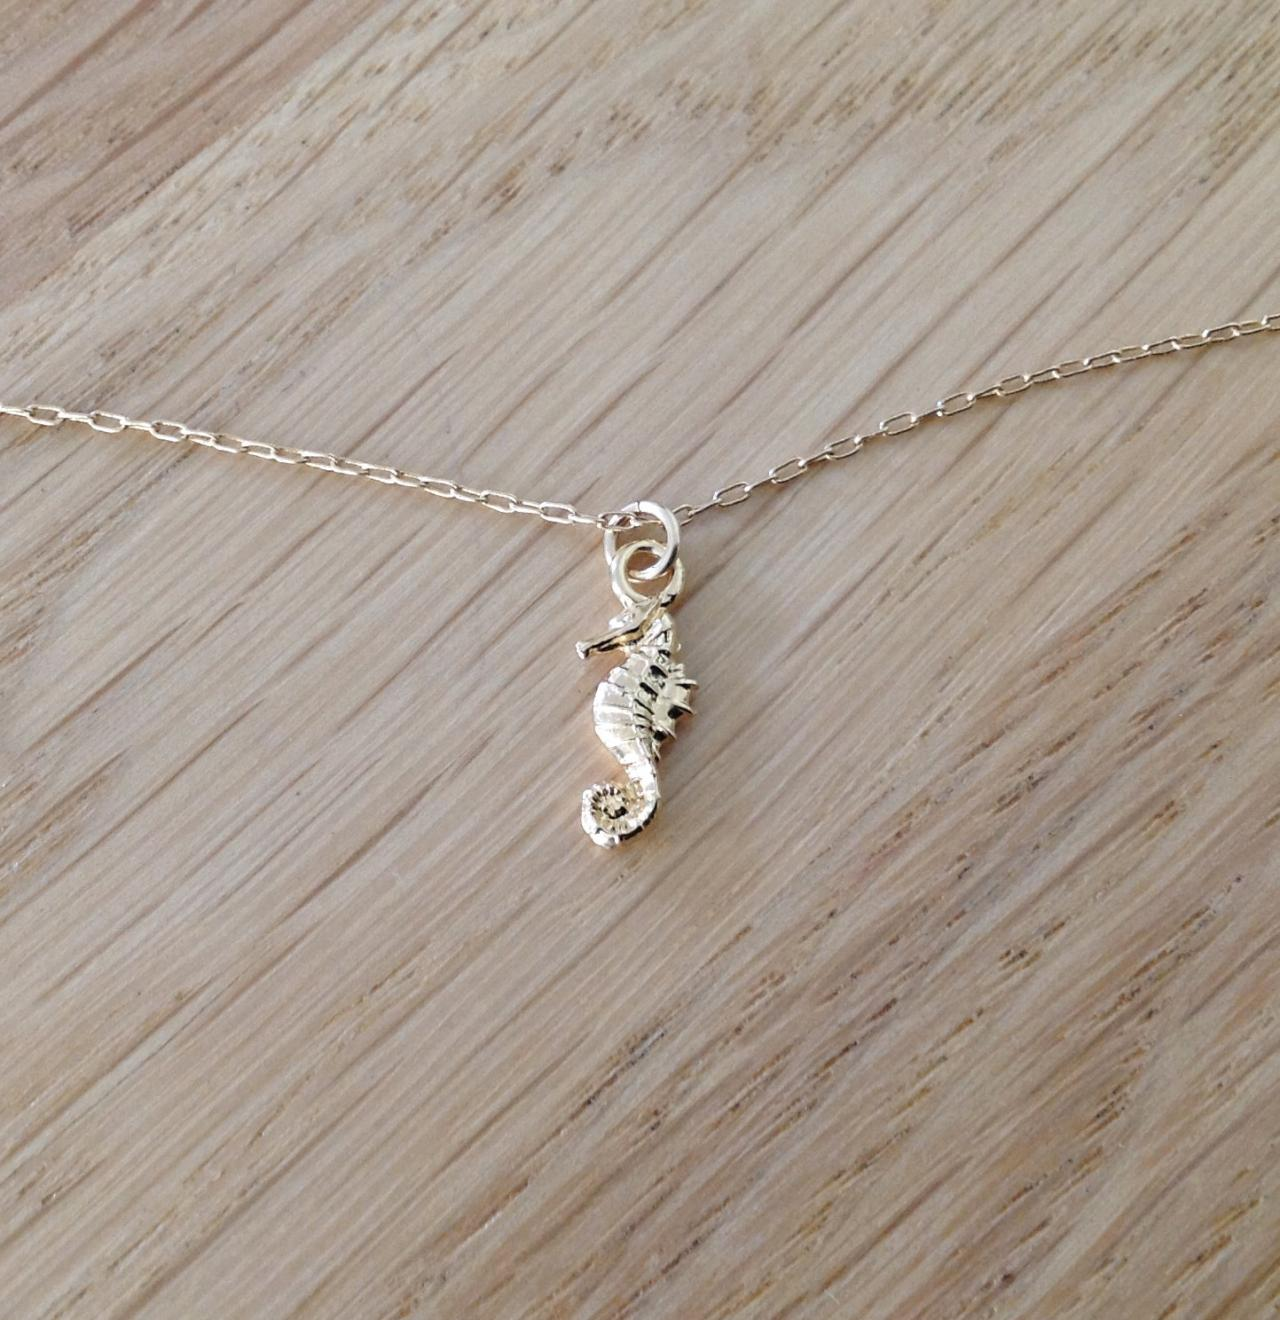 gold necklace, gold Walrus necklace, summer necklace, simple necklace, tiny gold necklace,1 petite jewelry D38